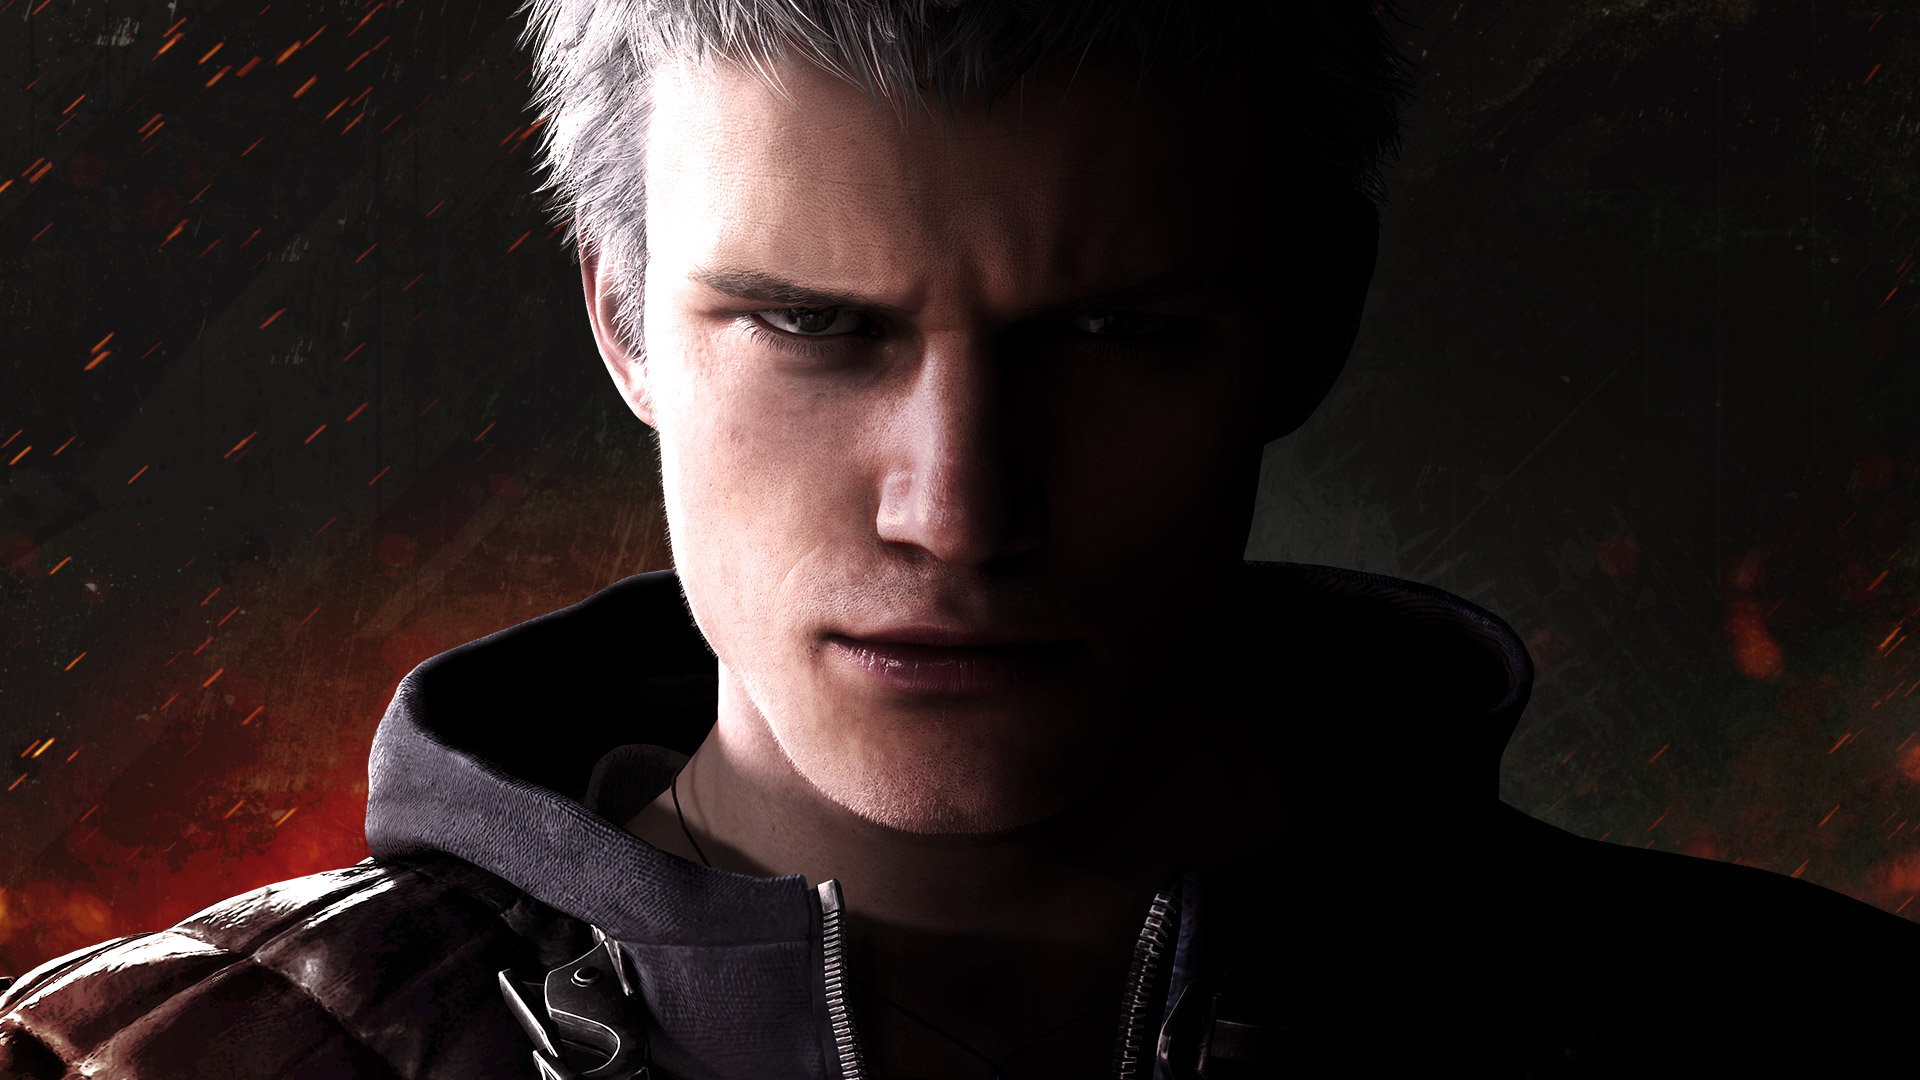 Devil May Cry 5 Hd Wallpaper Background Image 1920x1080